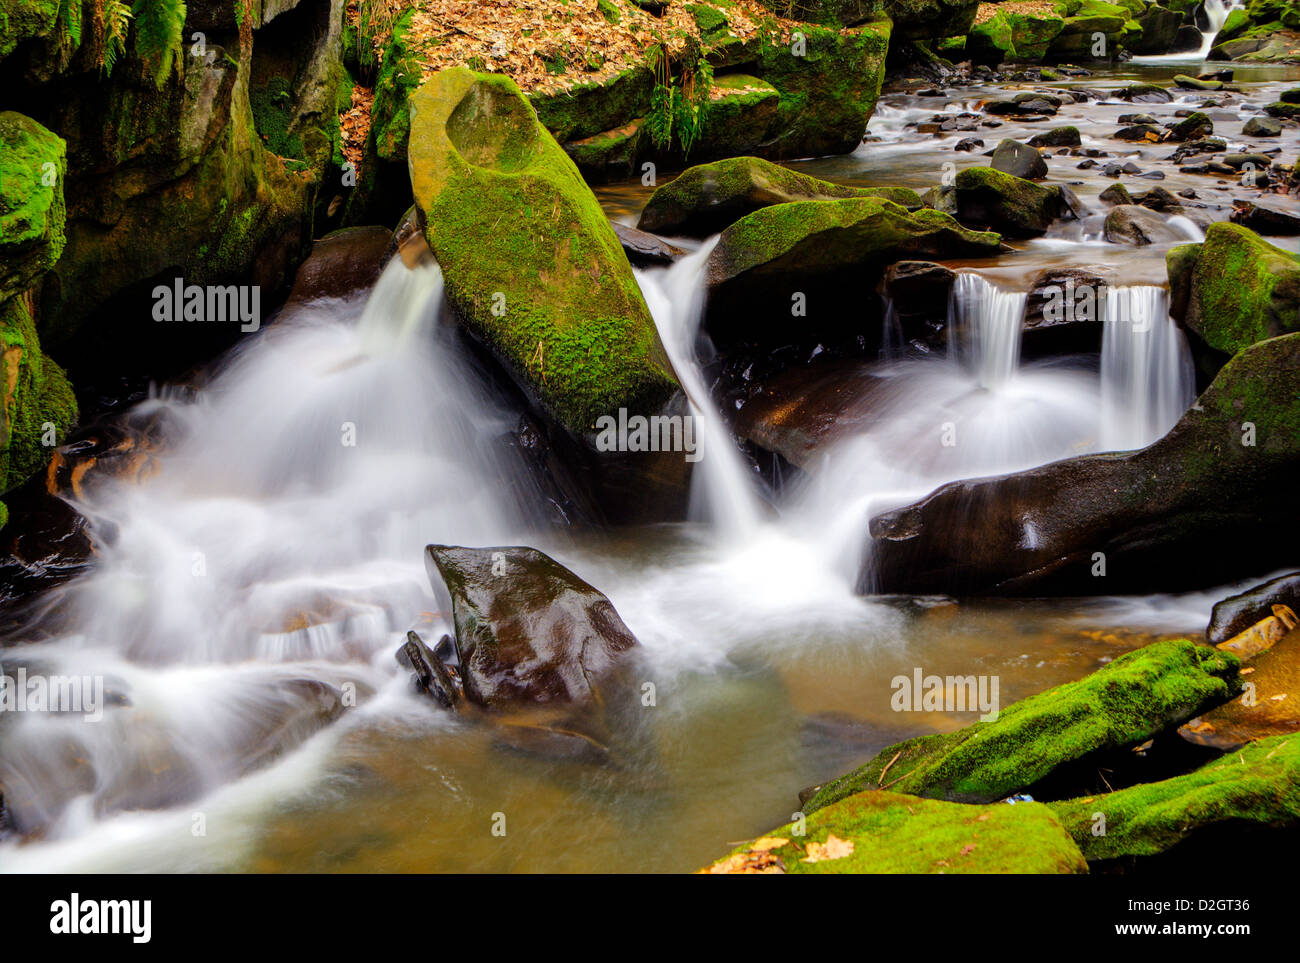 Closeup of the waterfalls at Healy Dell in Rochdale, Lancashire, United Kingdom - Stock Image